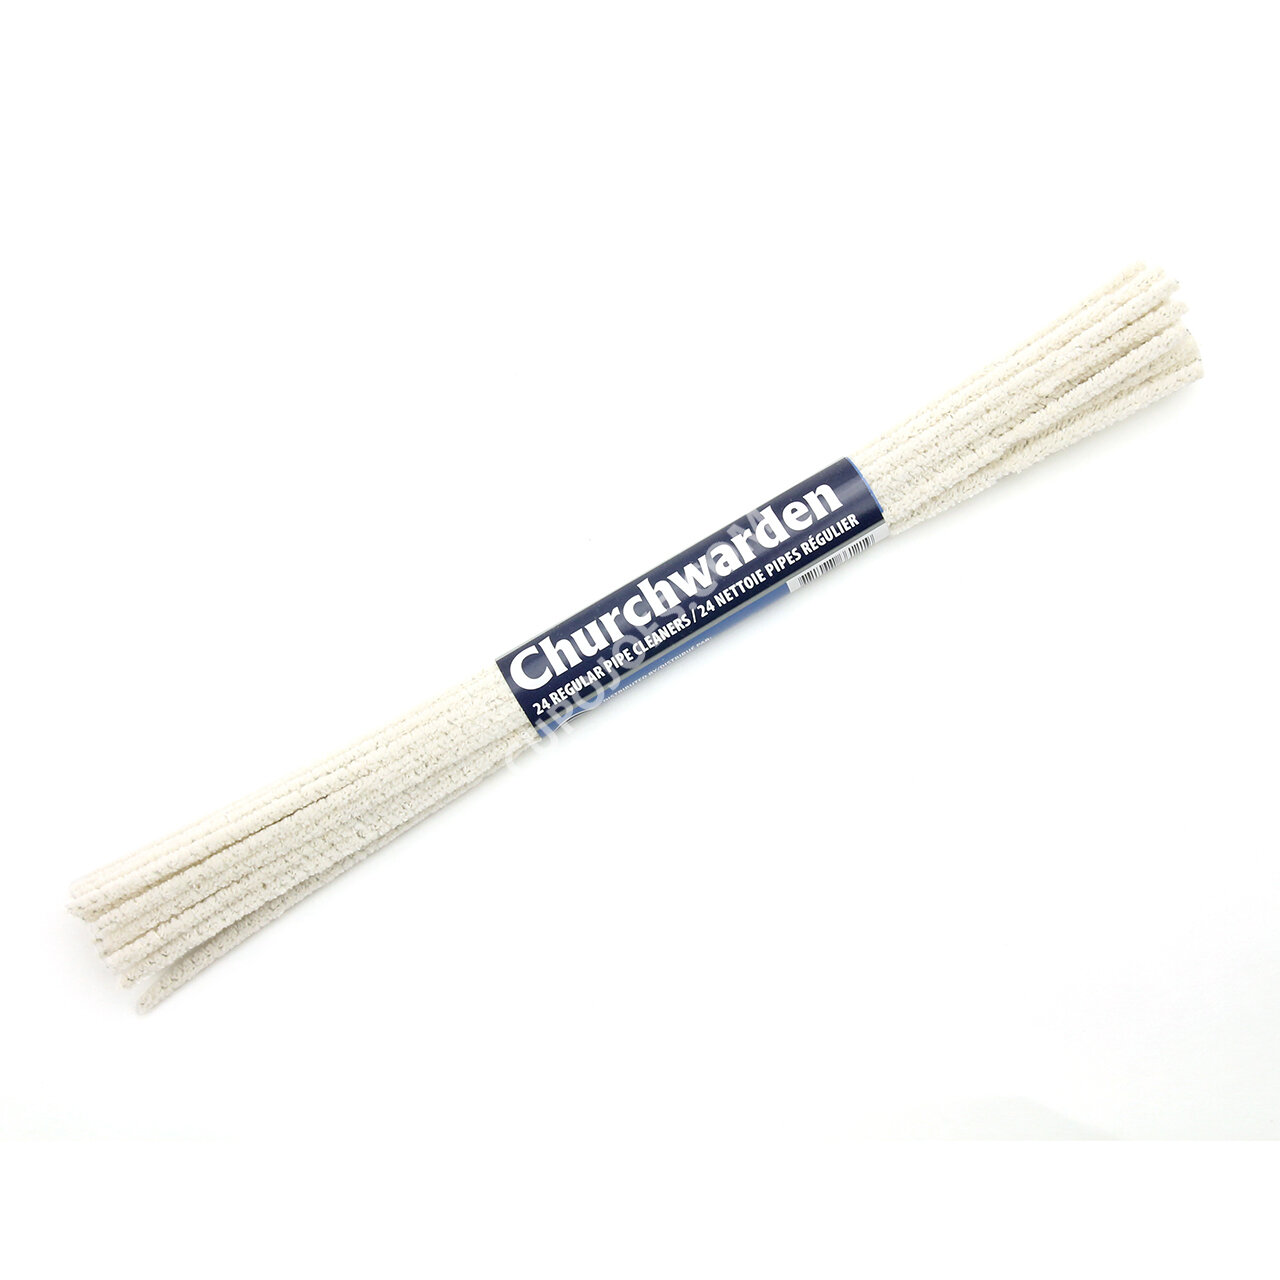 Brigham Churchwarden Pipe Cleaners 24 per pack